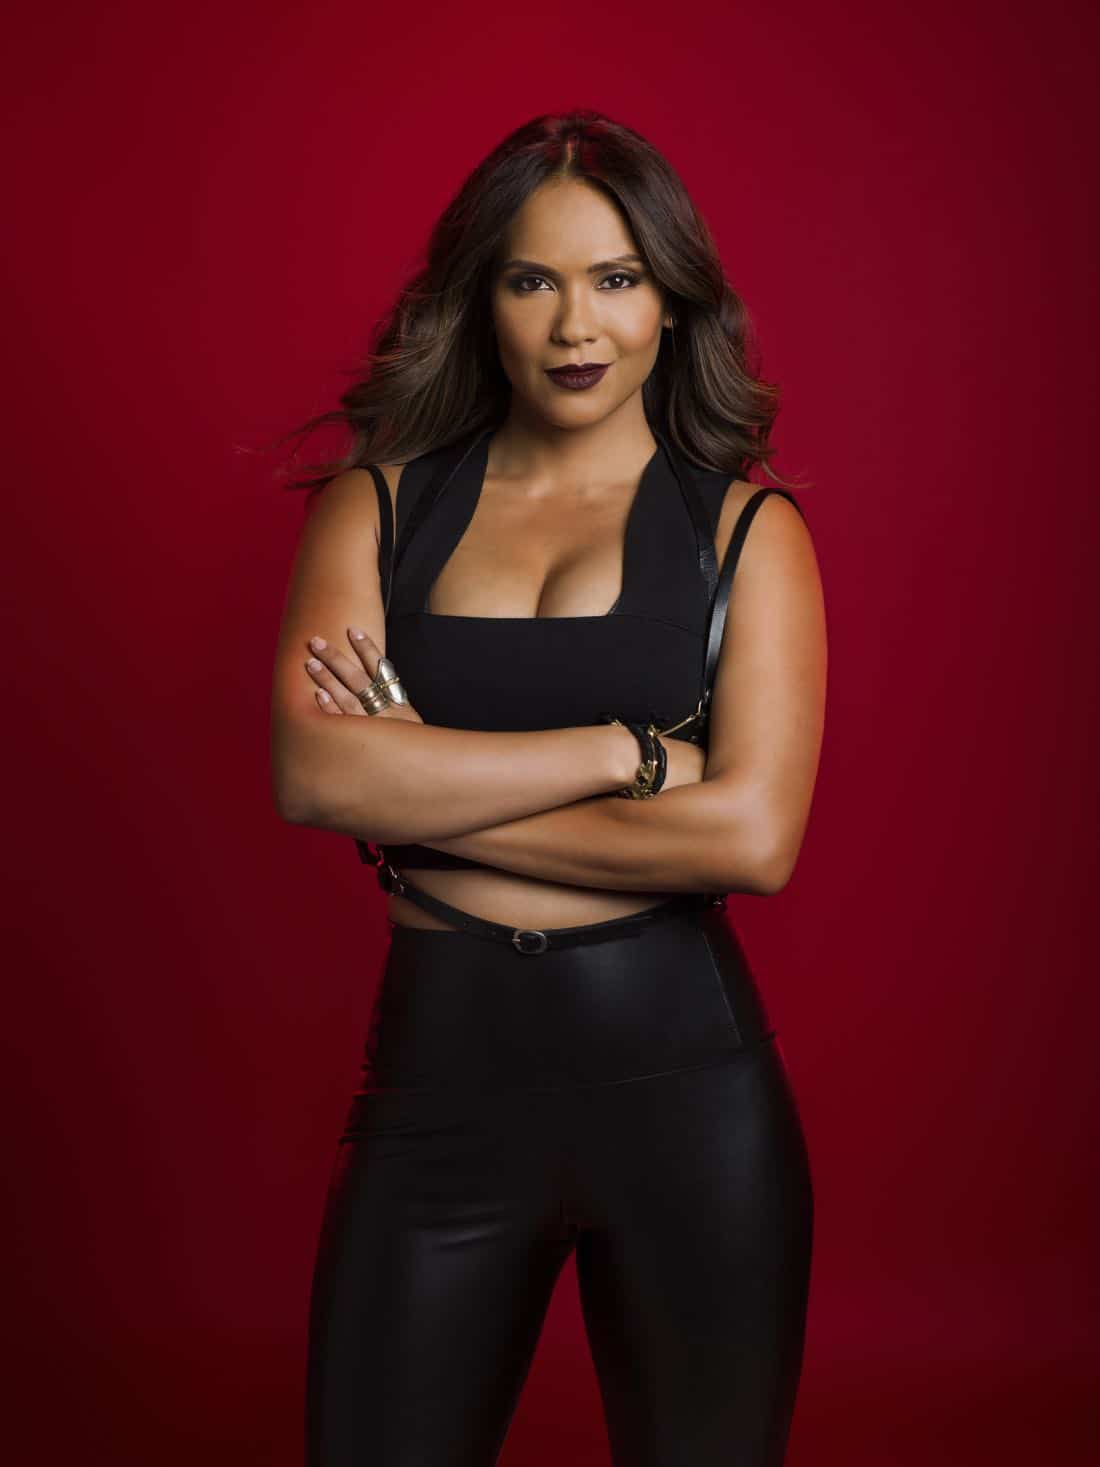 LUCIFER: Season 3 of LUCIFER premieres Monday, Oct. 2 on FOX. Lesley-Ann Brandt. ©2017 Fox Broadcasting Co. CR: Jason Bell/FOX